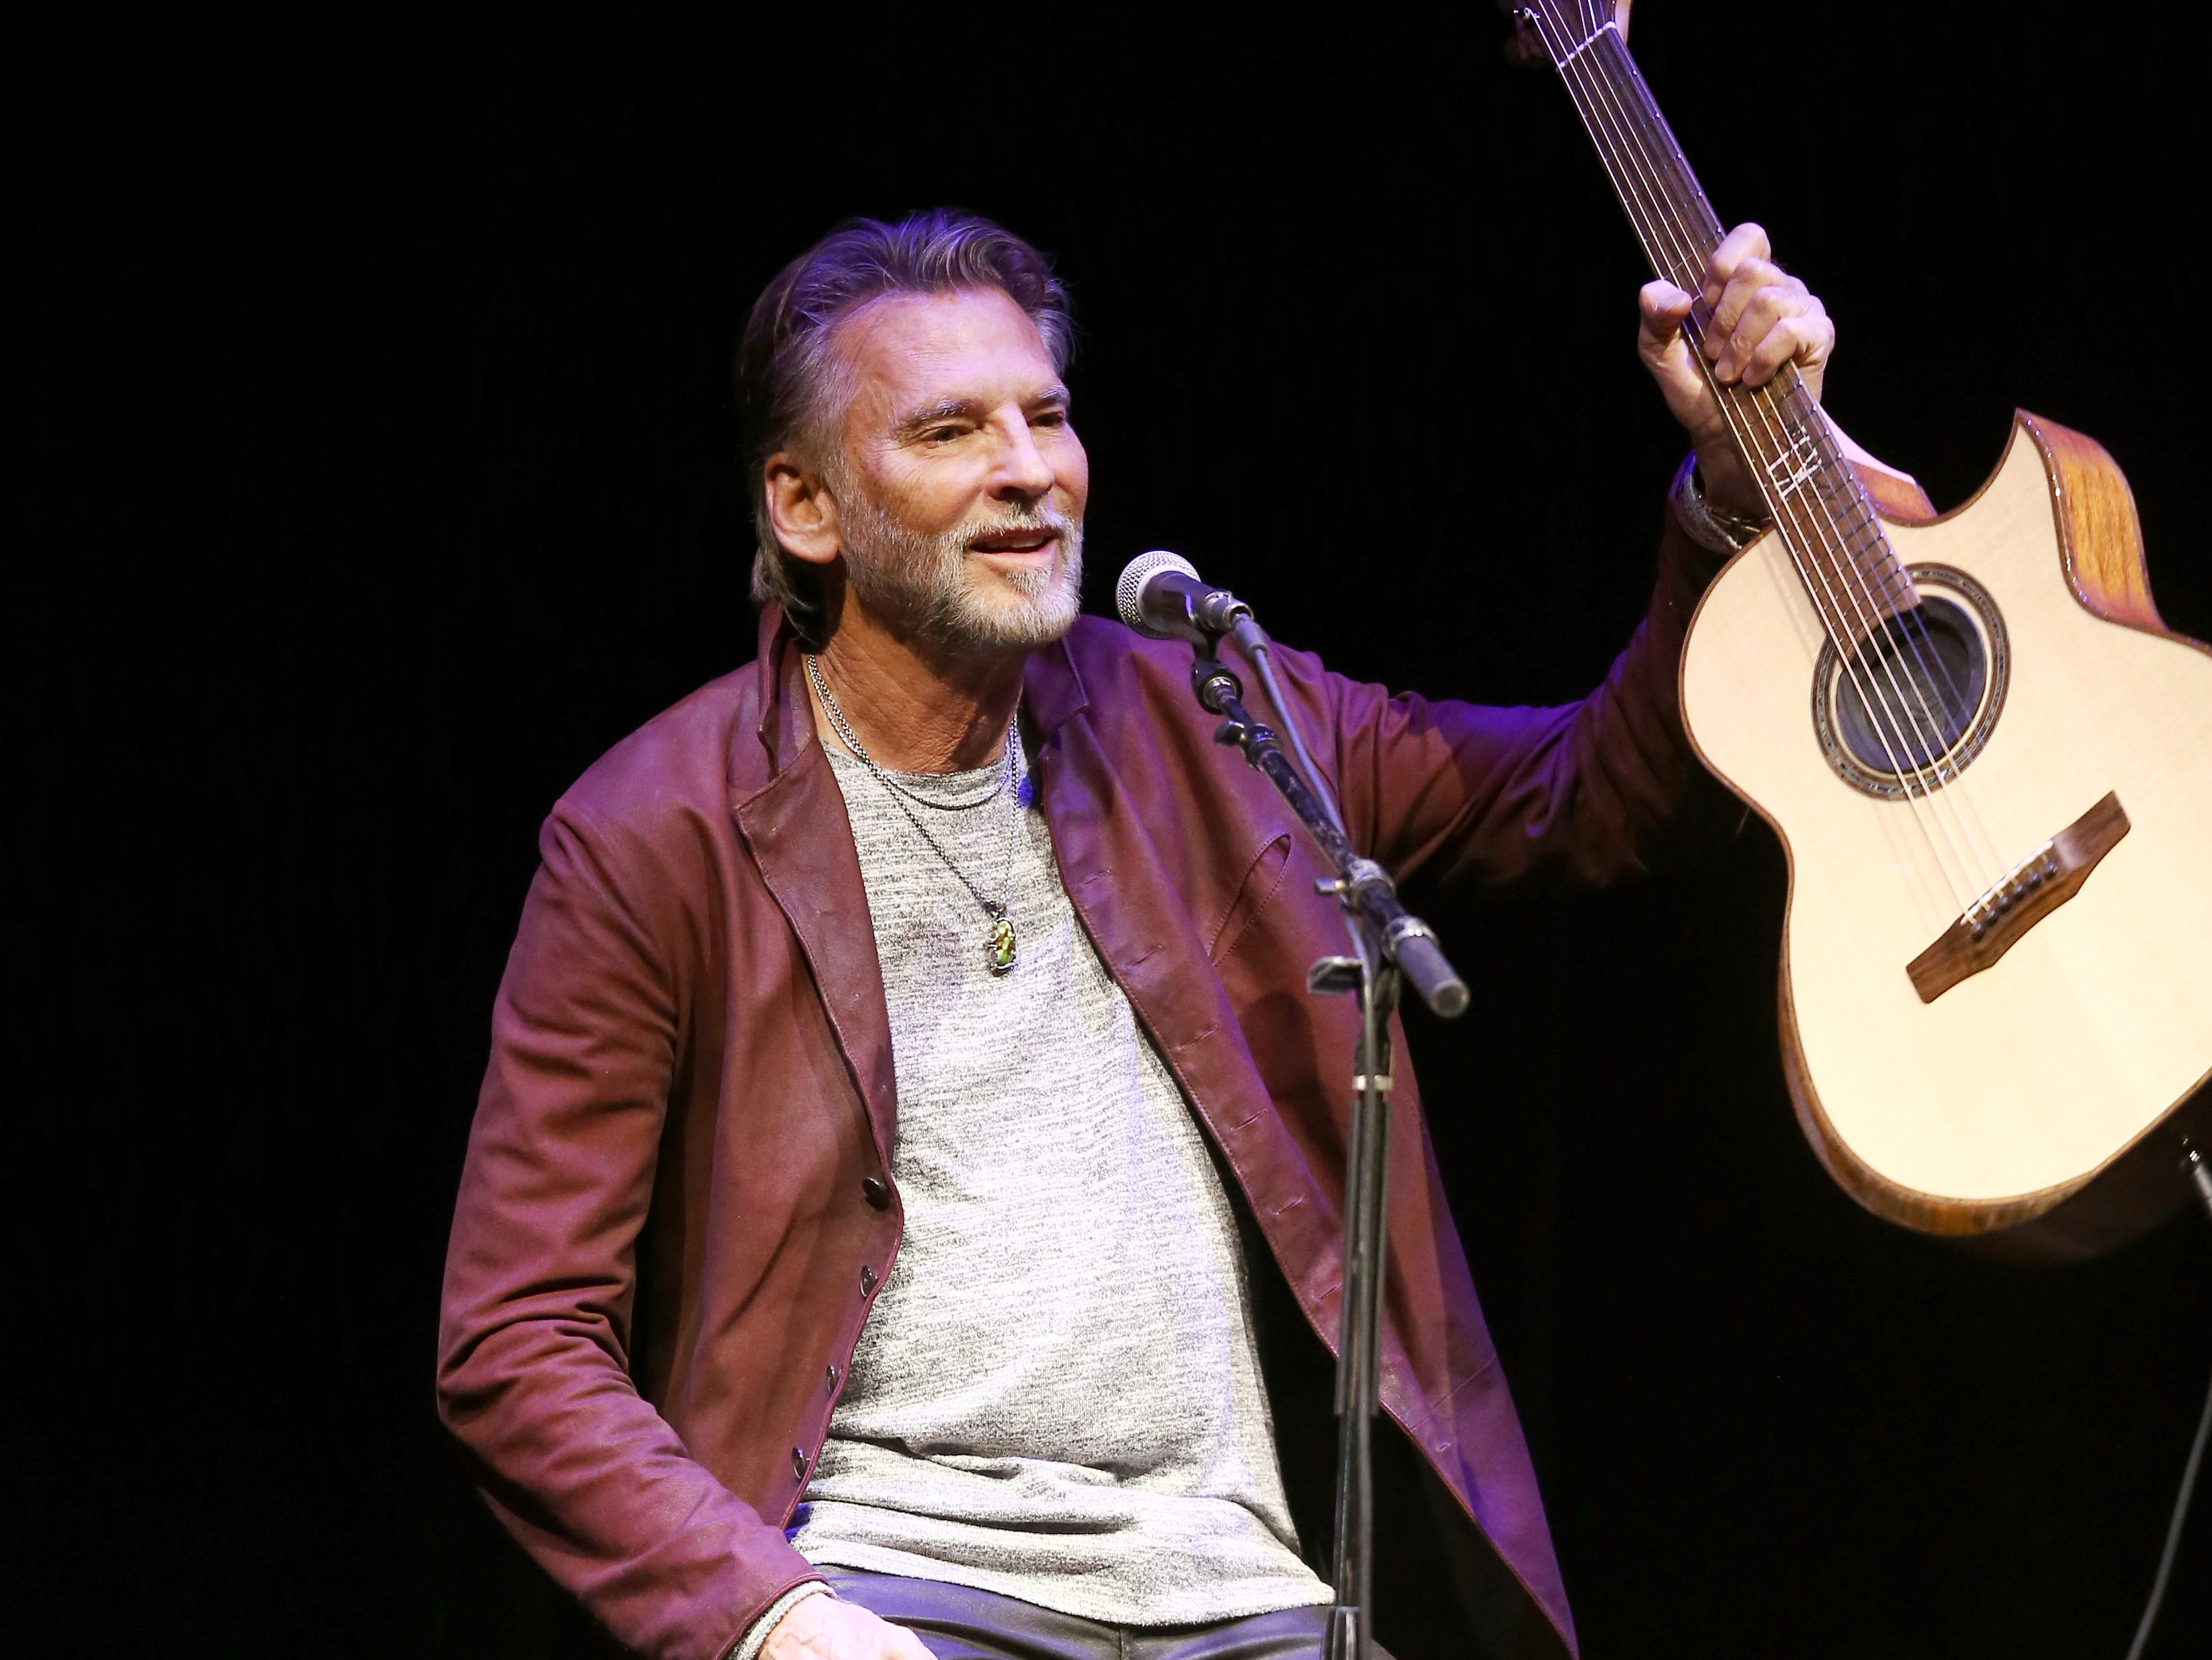 Feb. 8: Kenny Loggins performs at the Guild of Music Supervisors Awards in Los Angeles.